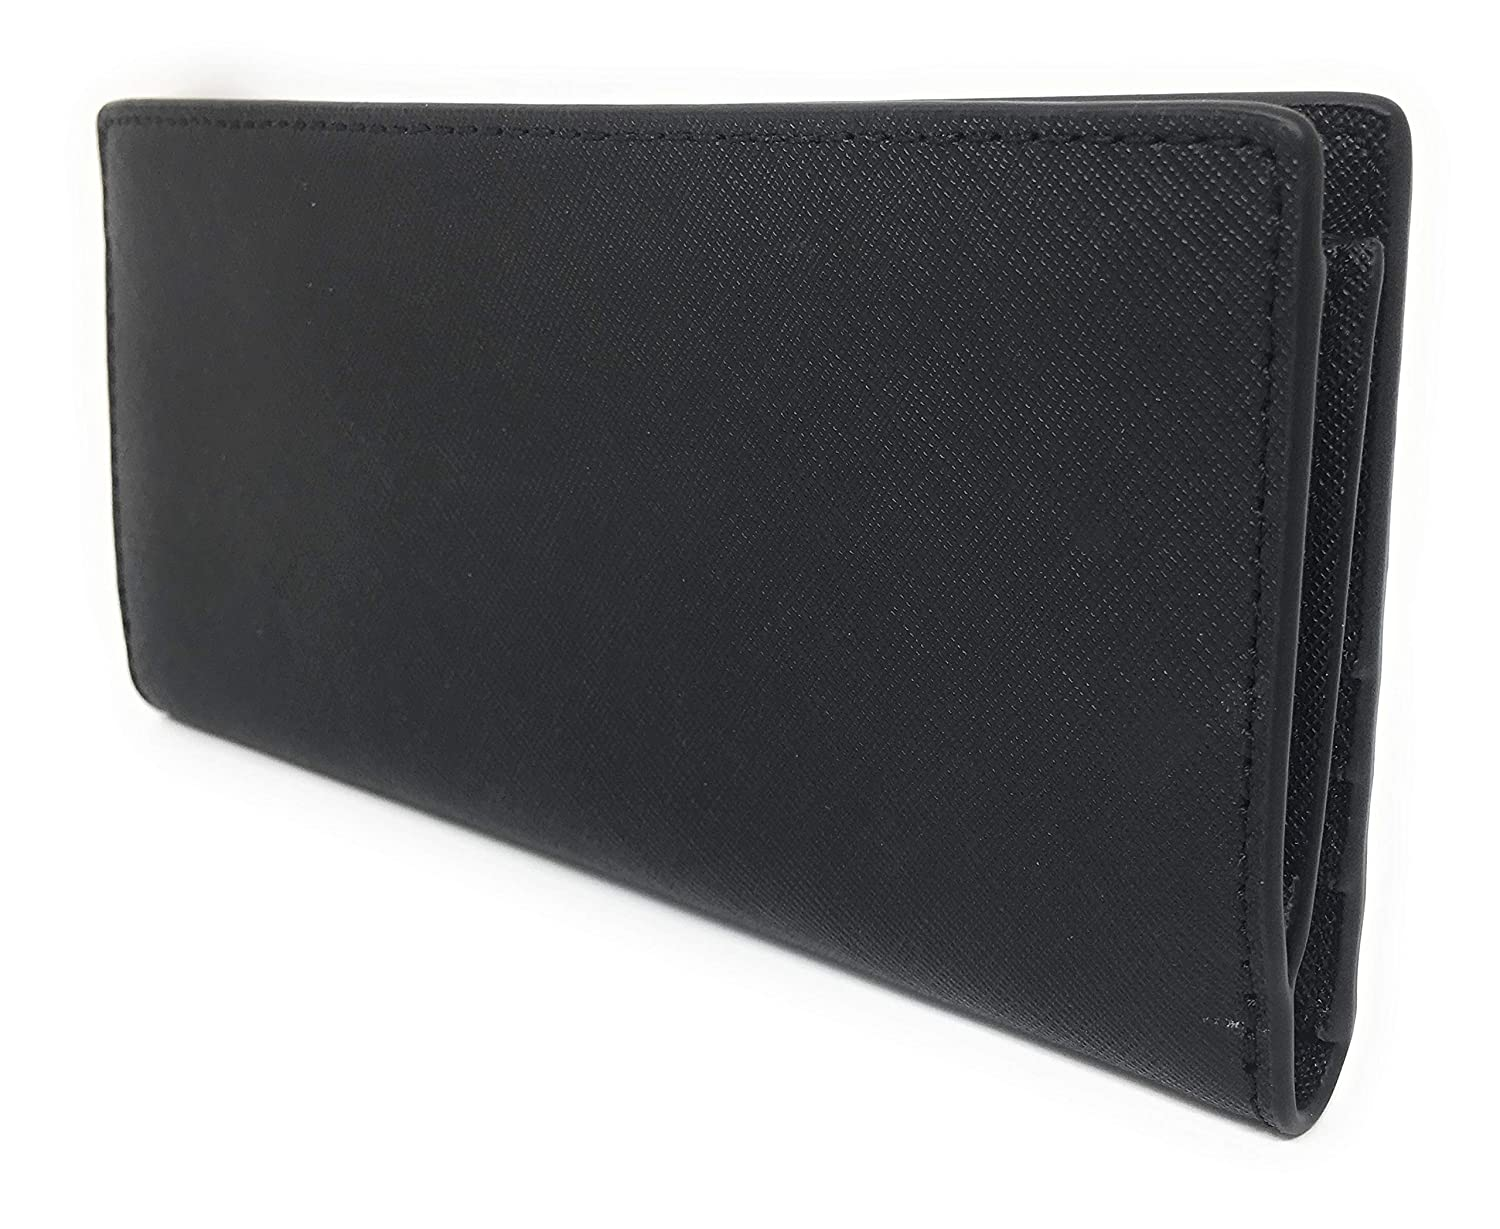 2f28d14693ab Amazon.com: Michael Kors Jet Set Travel Leather Medium Large Card Case  Carryall Wallet with Removable ID Card Holder (Black with Gold Hardware)